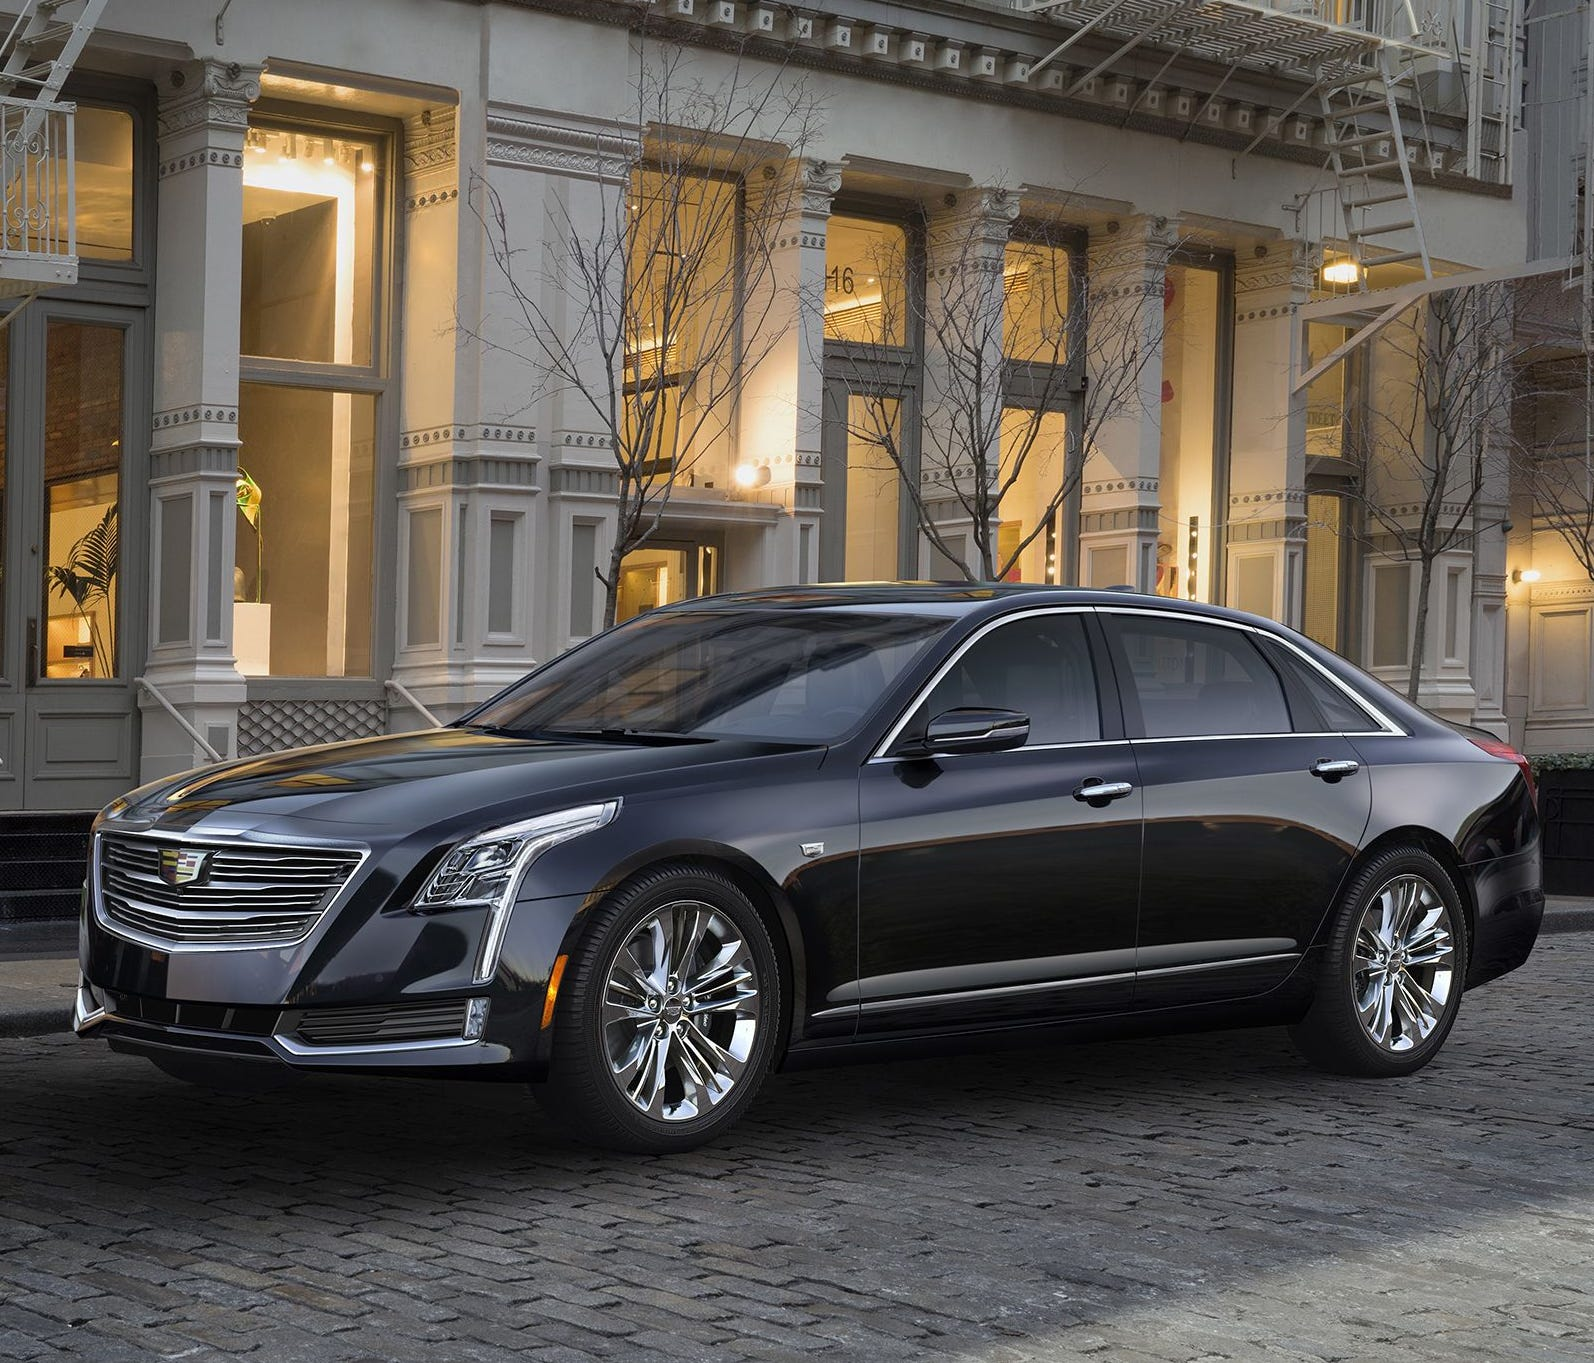 This photo, provided by Cadillac, shows a 2018 Cadillac CT6, which has a semiautonomous driving system called Super Cruise as an available option. Like Autopilot, Super Cruise employs a suite of external sensors and cameras. Then it adds a subsystem